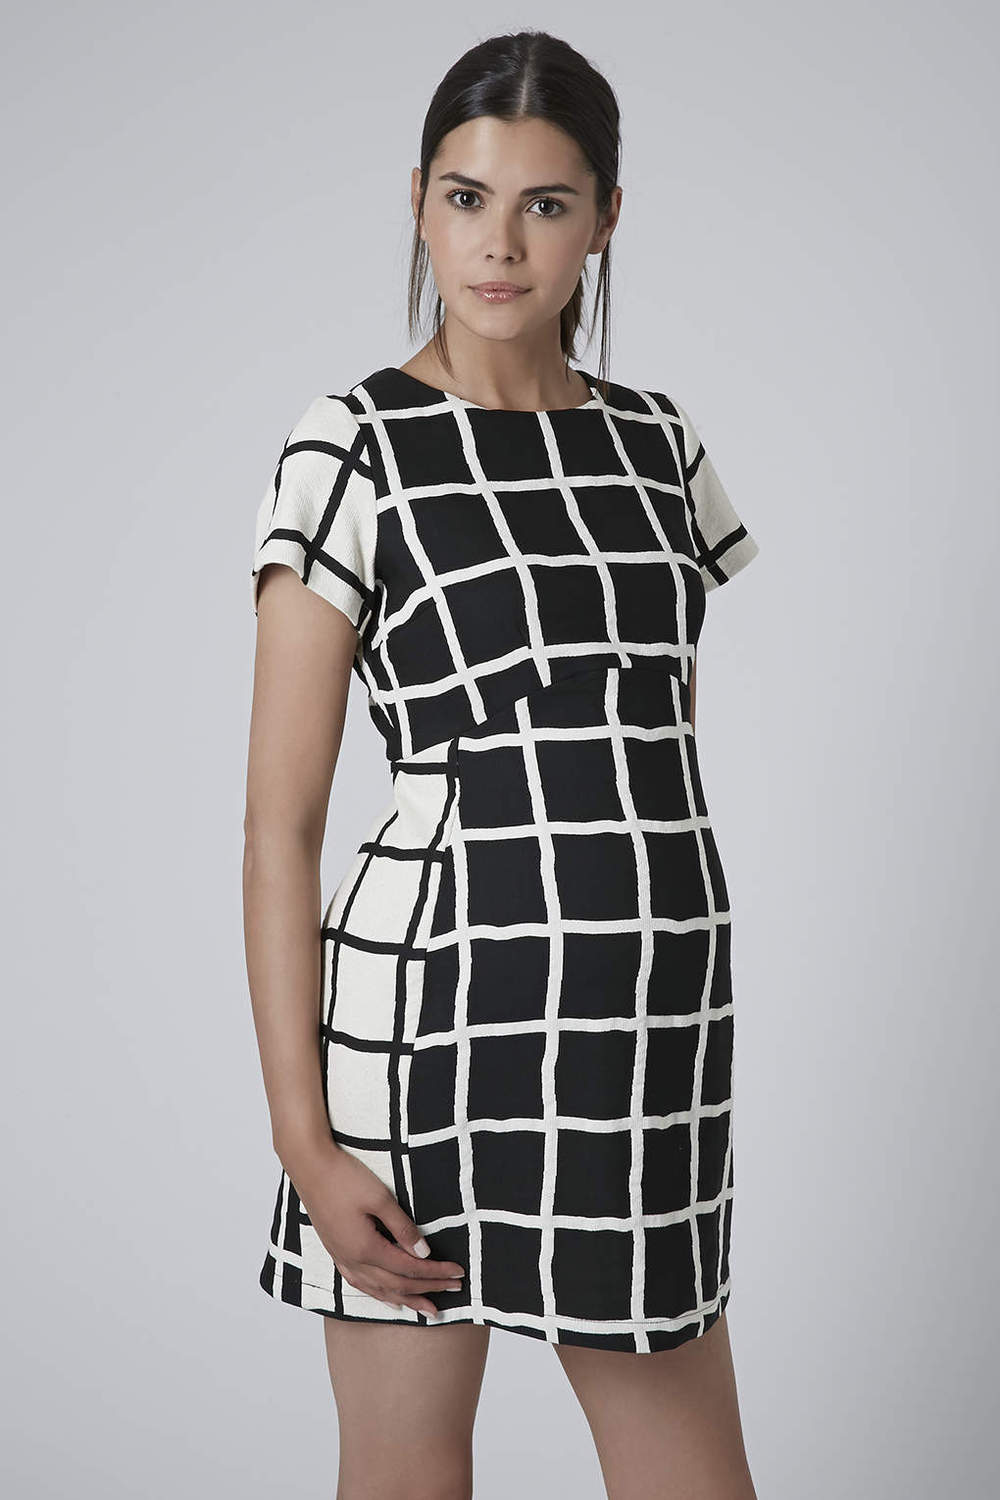 Windowpane check print maternity dresses for office buy windowpane check print maternity dresses for office ombrellifo Image collections